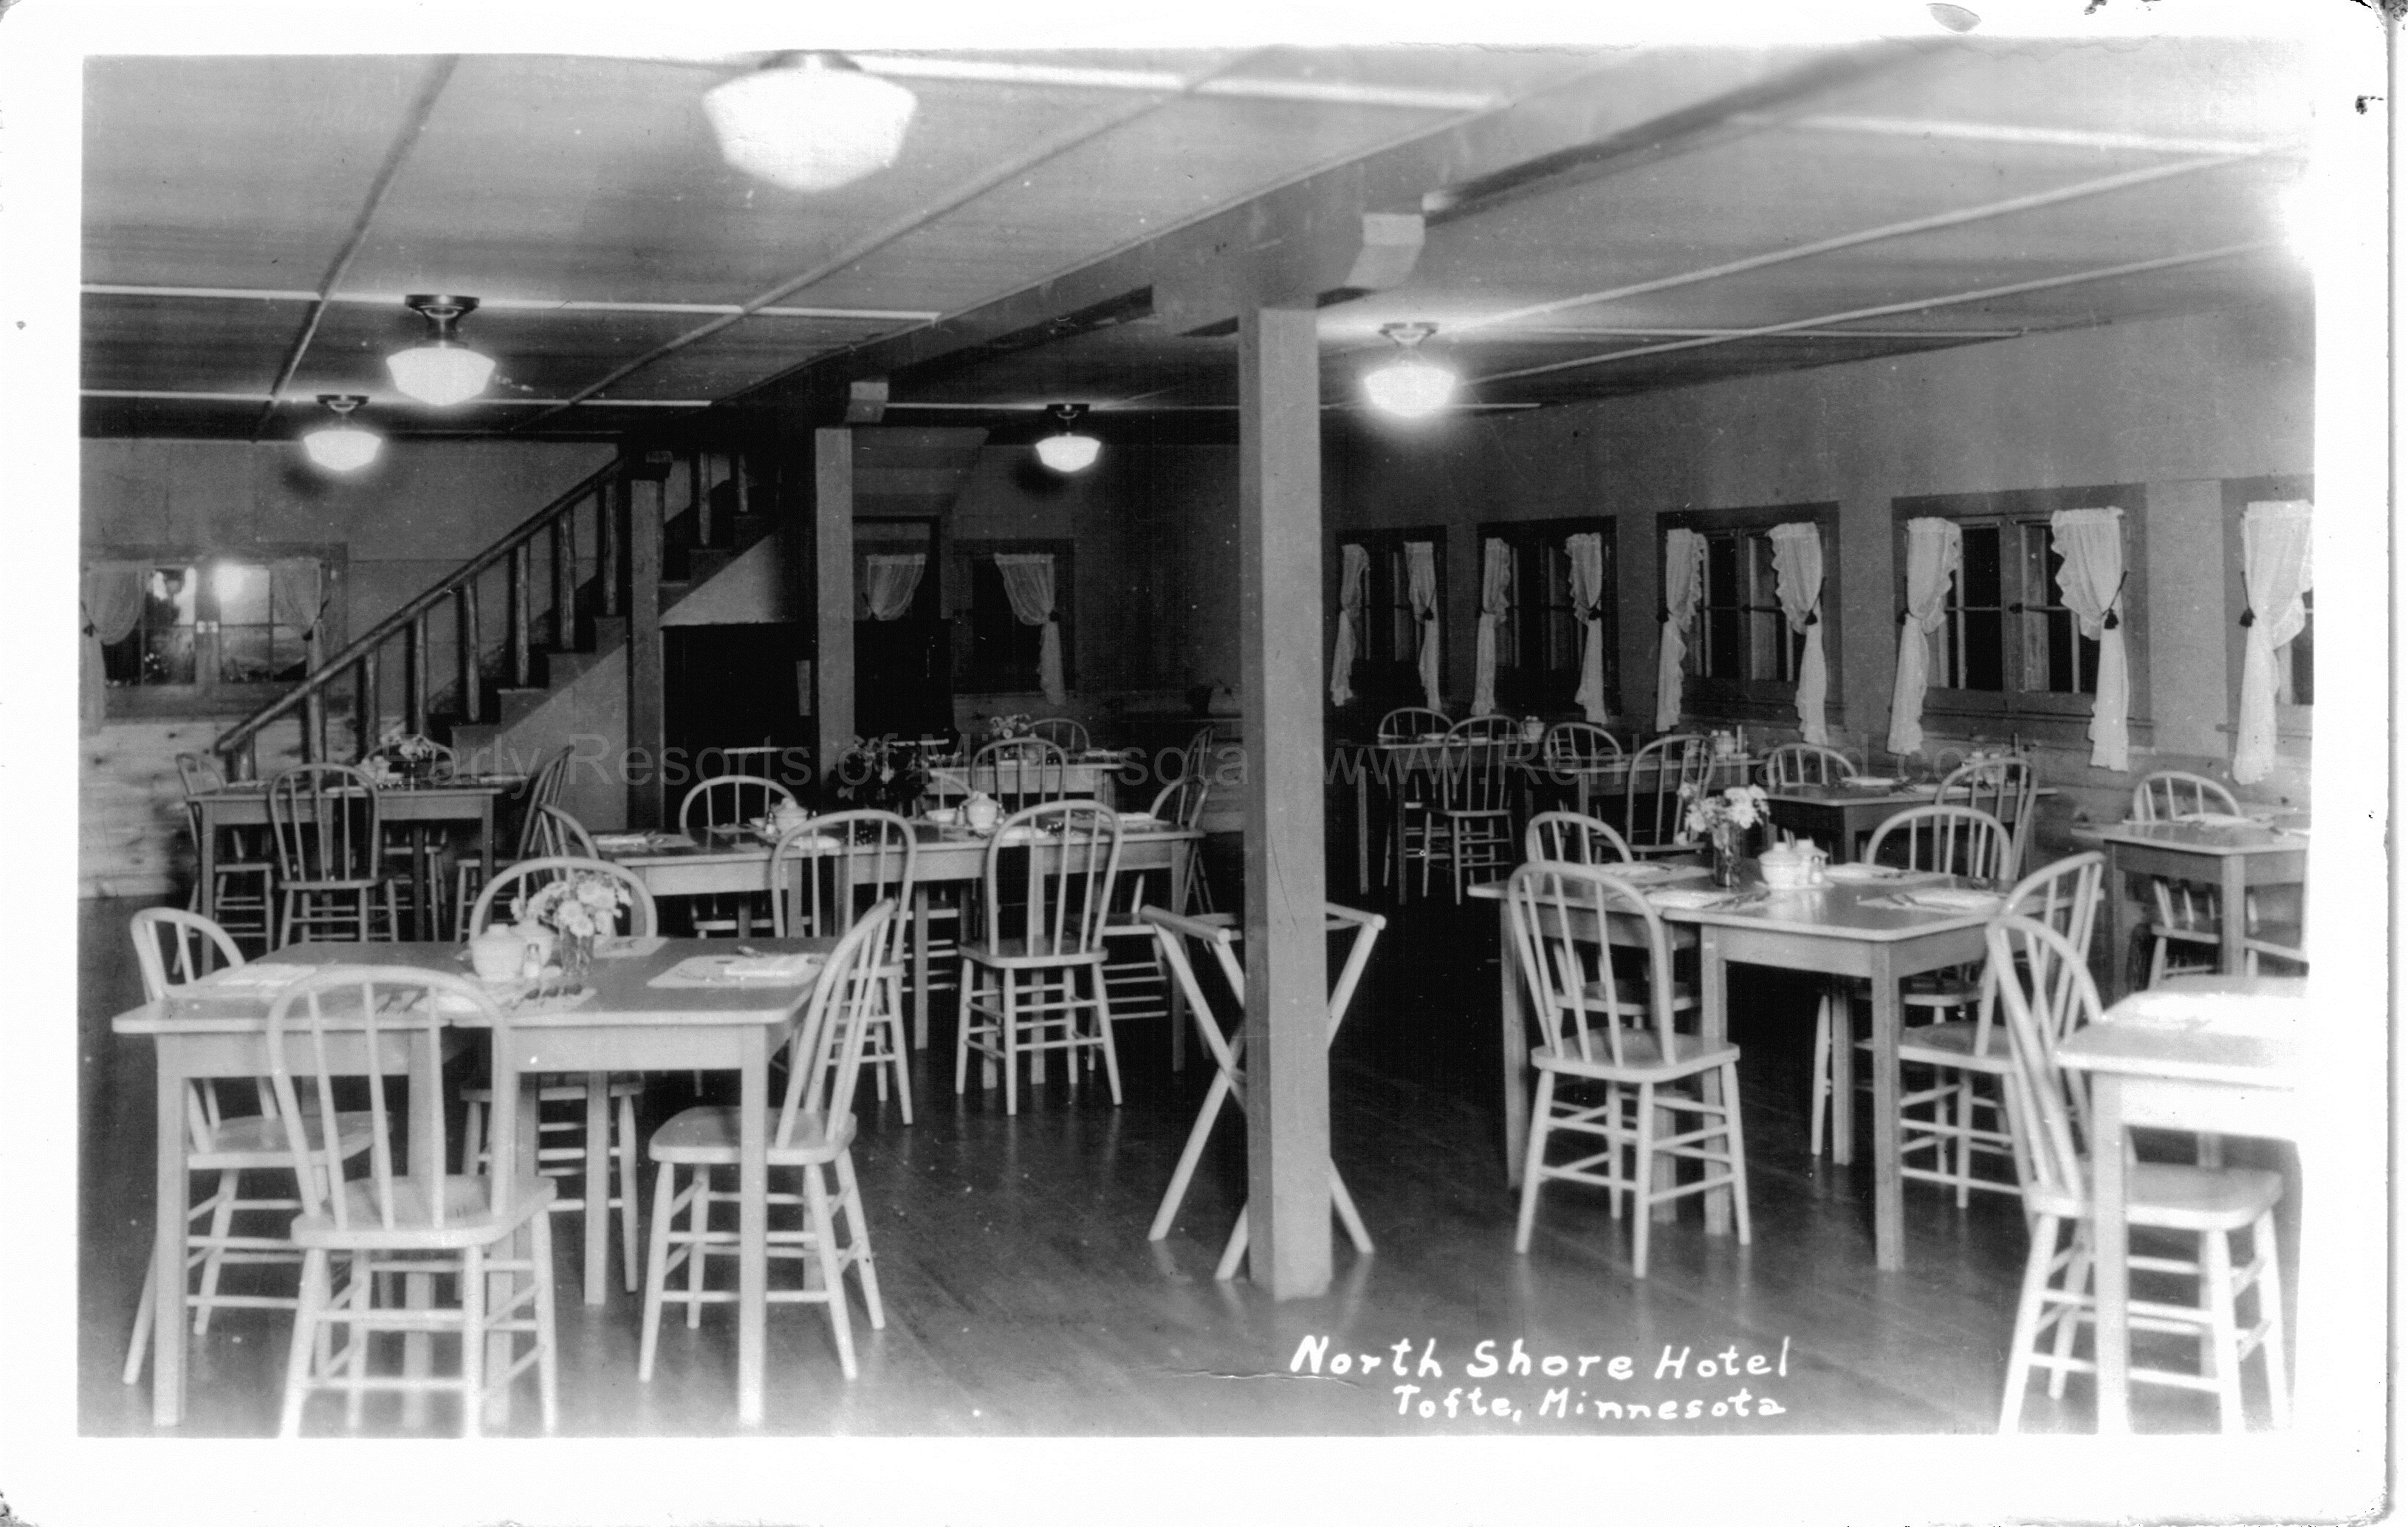 early resorts of minnesota photos ren holland s website 10h 5 north shore hotel dining room tofte ca 1940